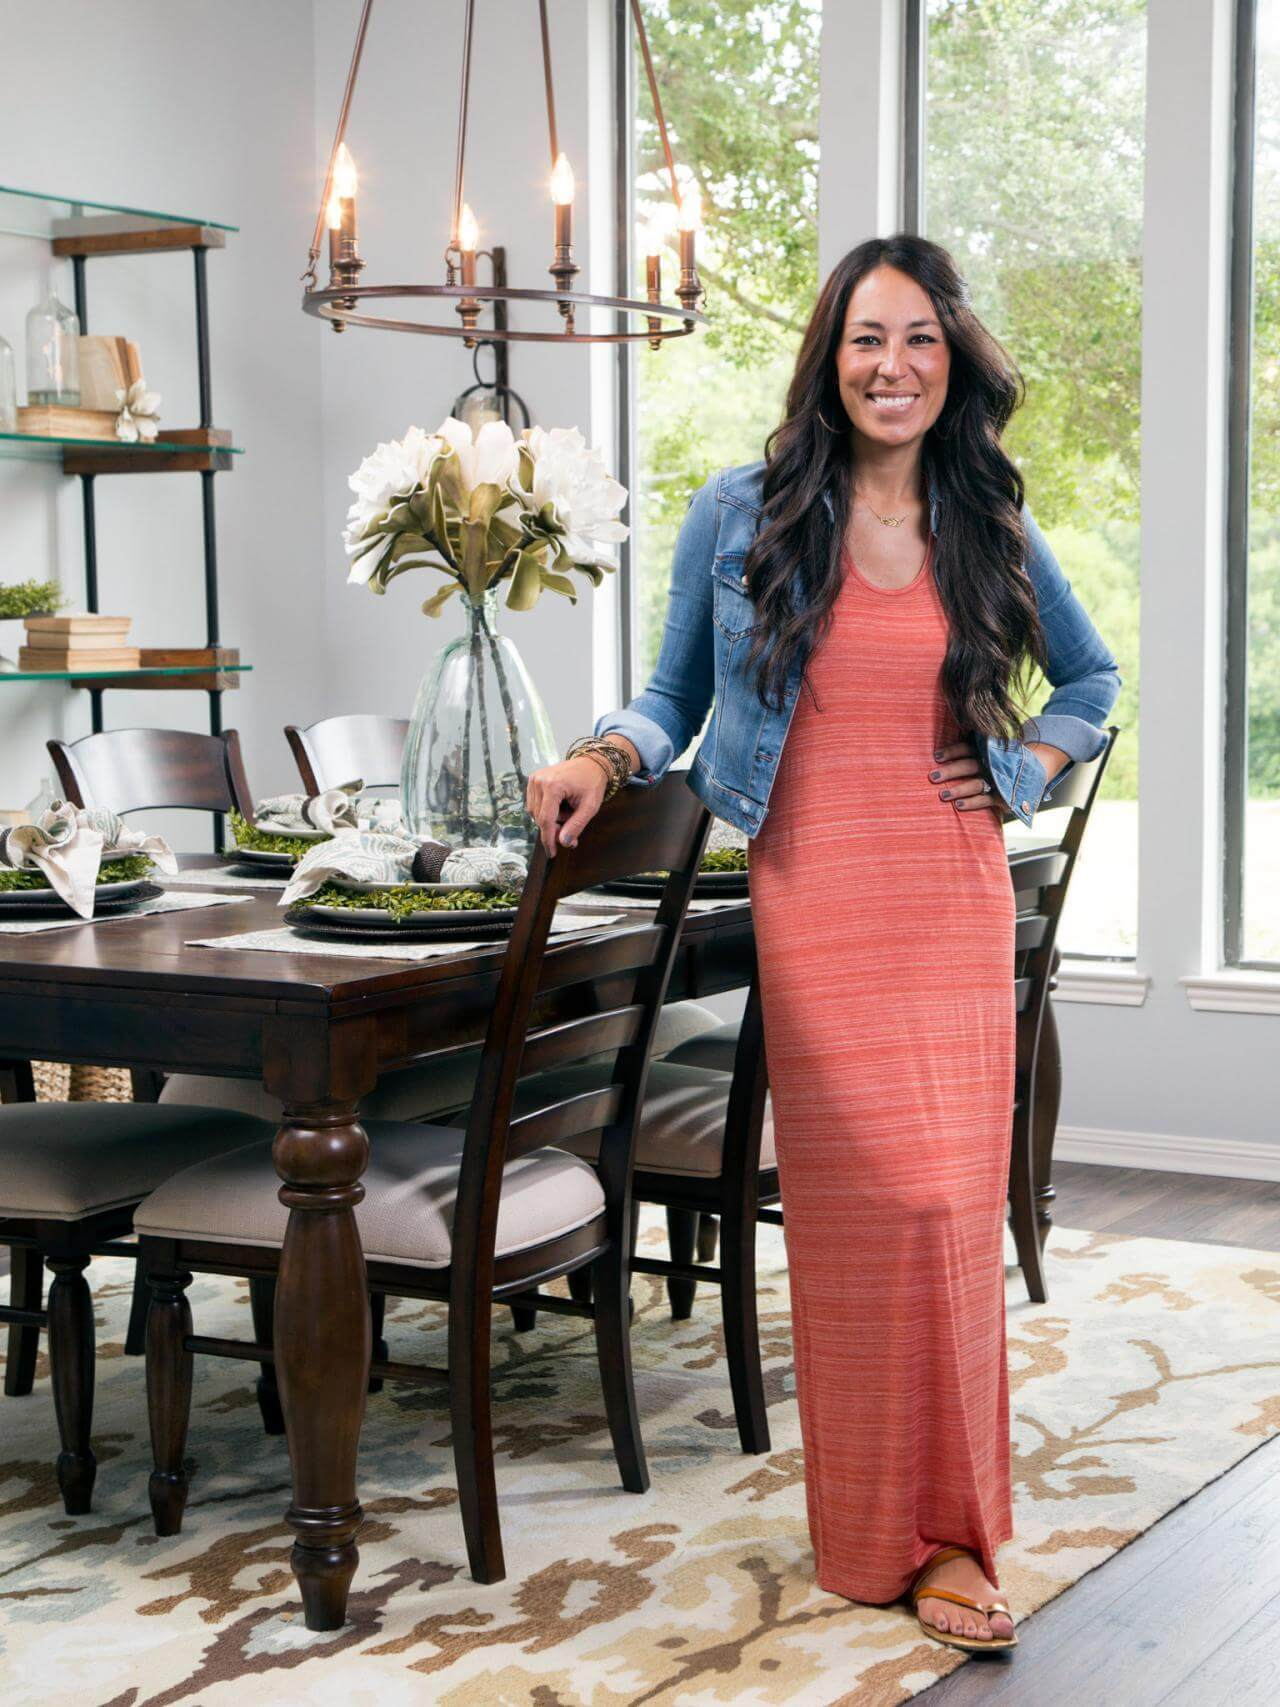 30 Sexy Photos Of Joanna Gaines Legs Too Much For You